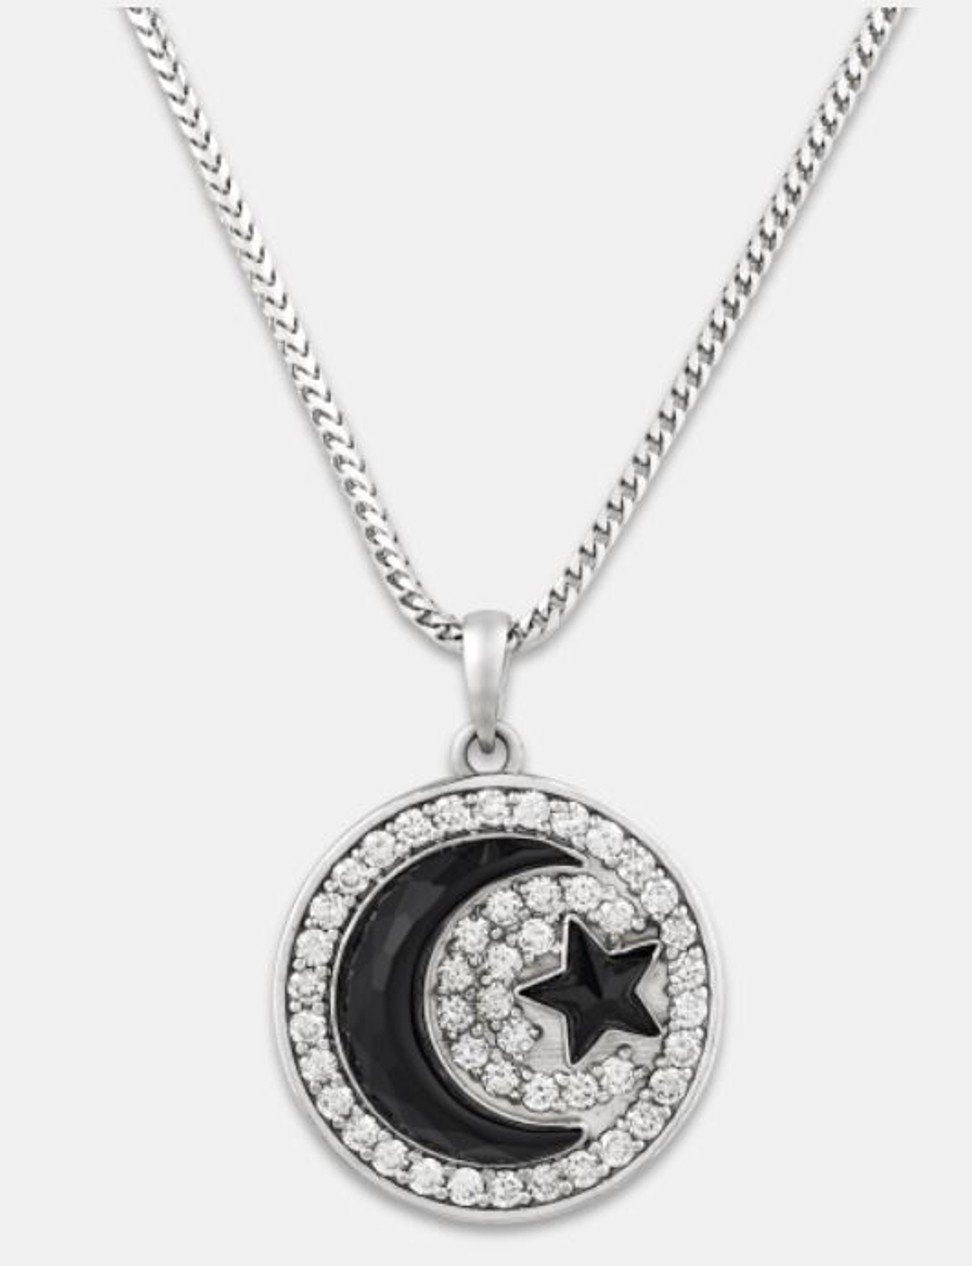 This onyx crescent moon and star pendant, in 14-carat gold with 2.88 carats of diamonds, is going for US$44,500. Photo: Handout